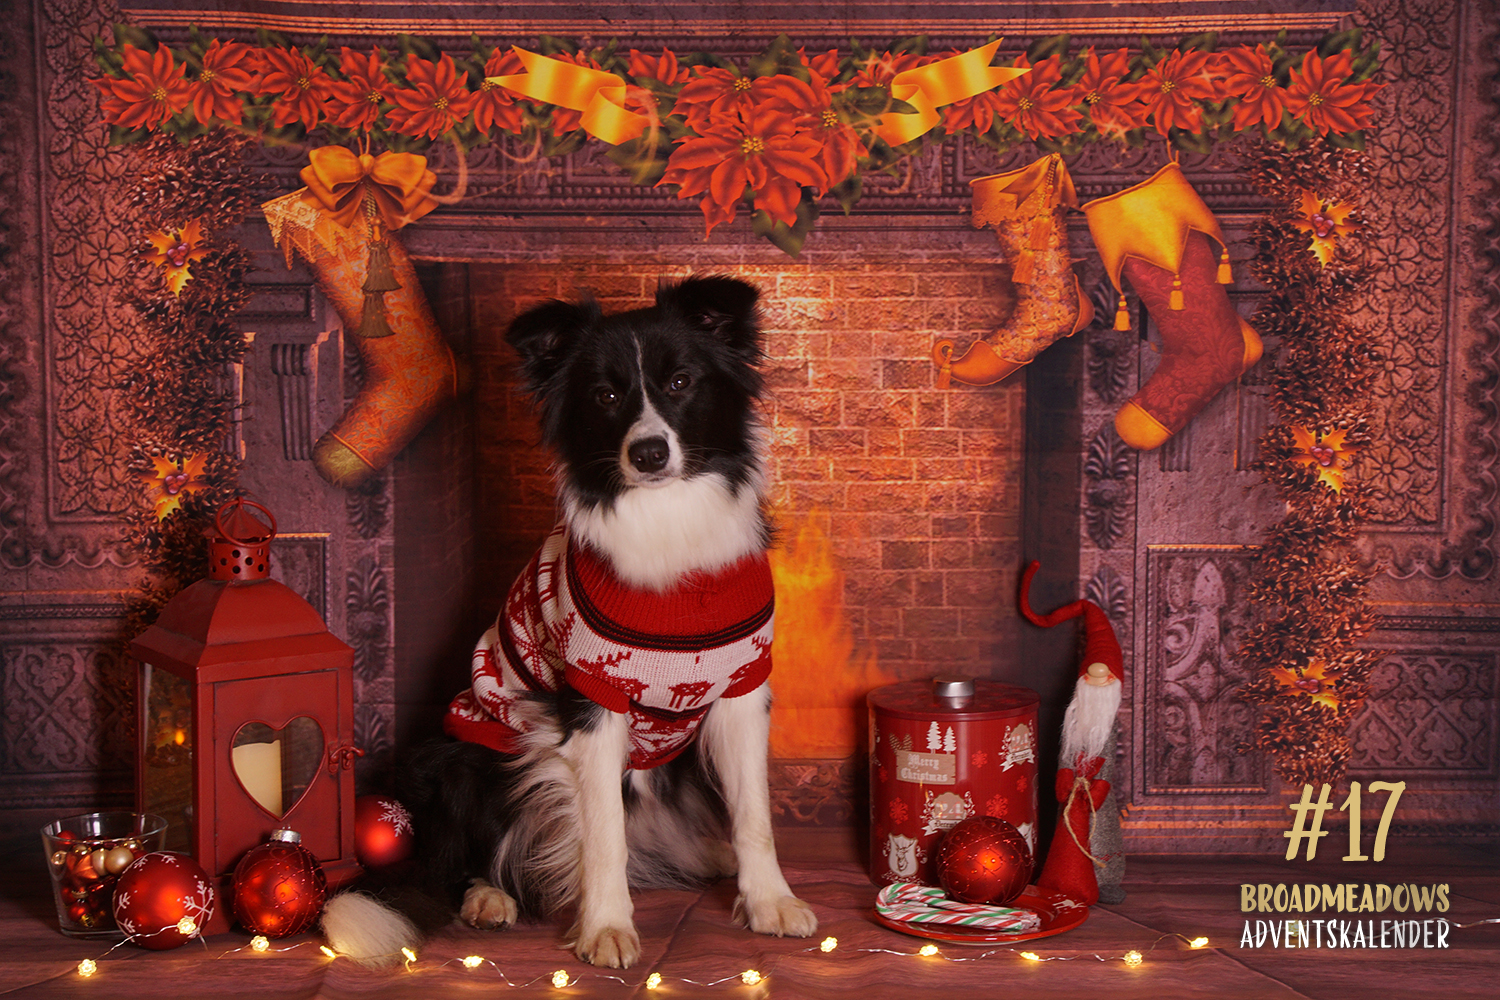 Broadmeadows Border Collies Adventskalender – No. 17: »Ellie« (Broadmeadows Celebrity Skin)